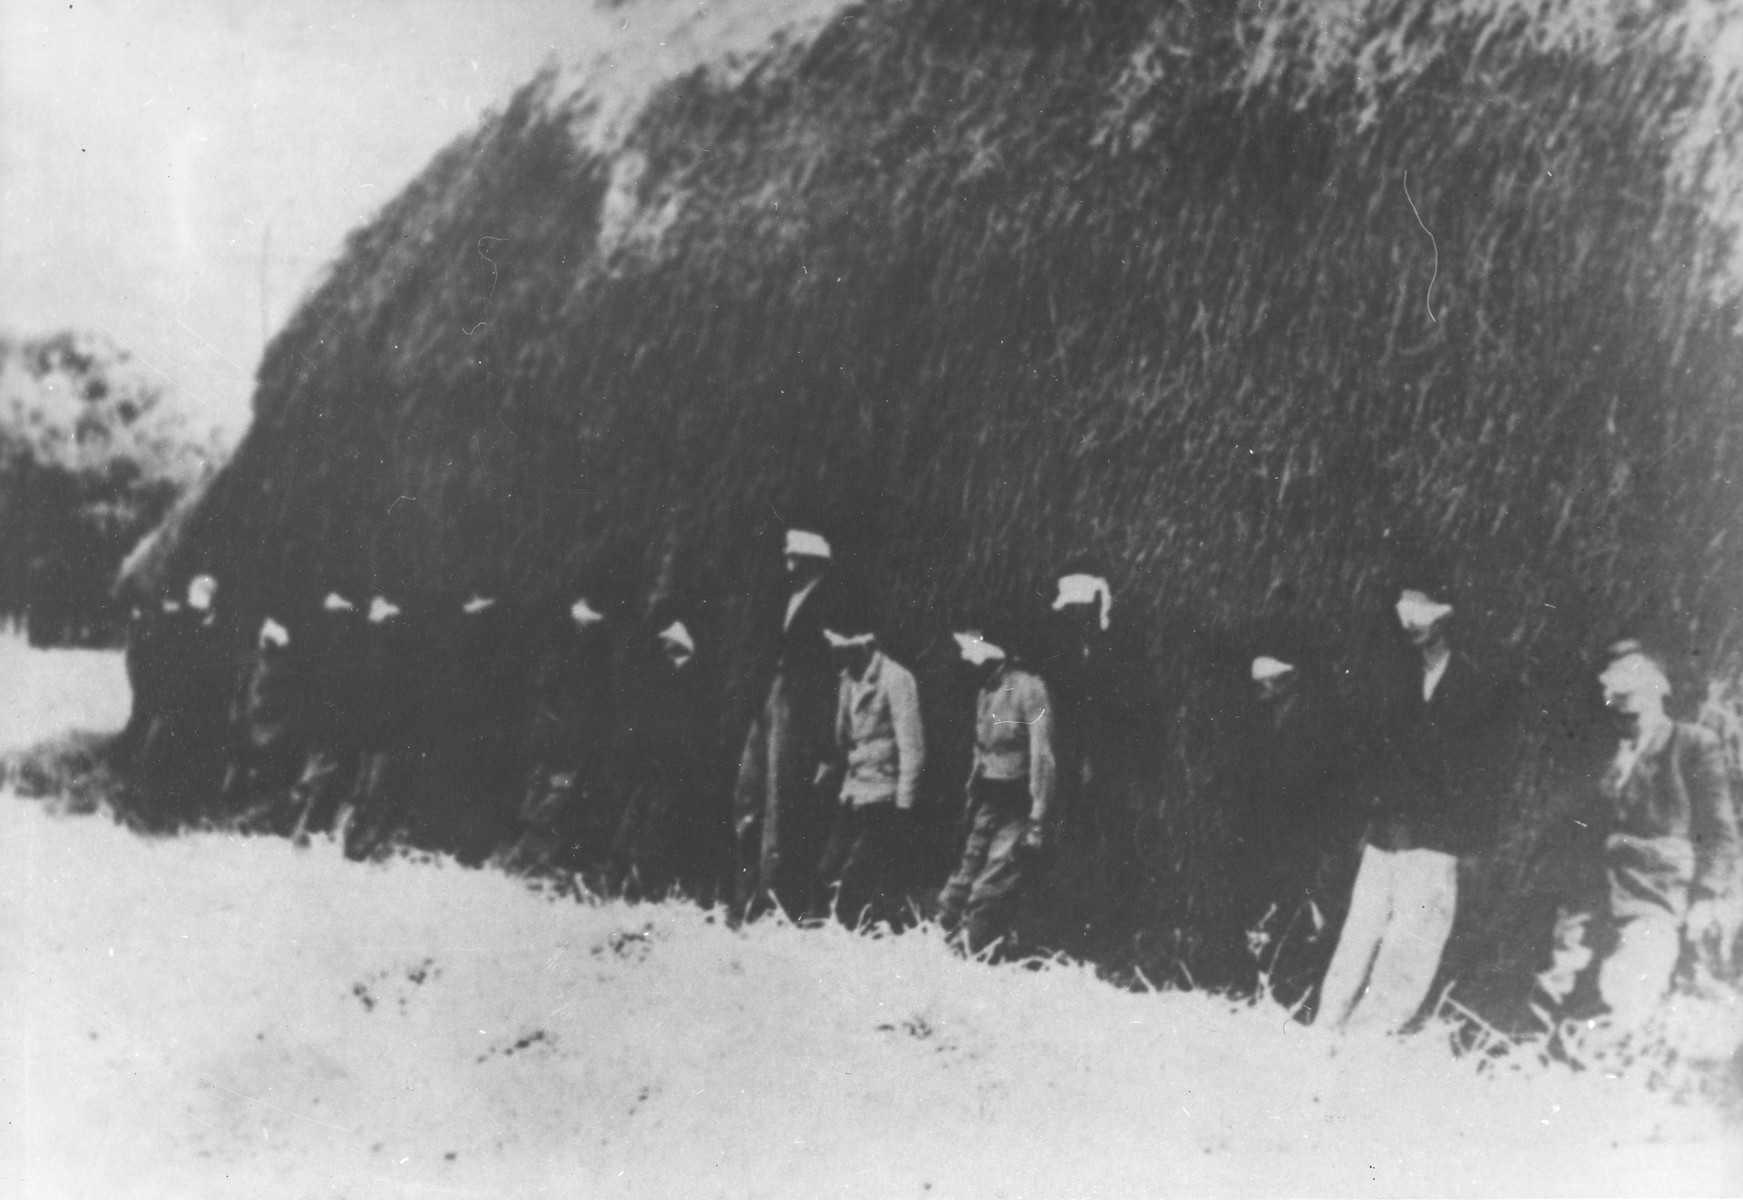 Sixteen blindfolded partisan youth await execution by German forces in Smederevska Palanka, Serbia.  A German soldier was widely reported to have been executed along with the partisans for refusing to take part in the action.  However, in actuality he died from wounds he suffered the previous day.